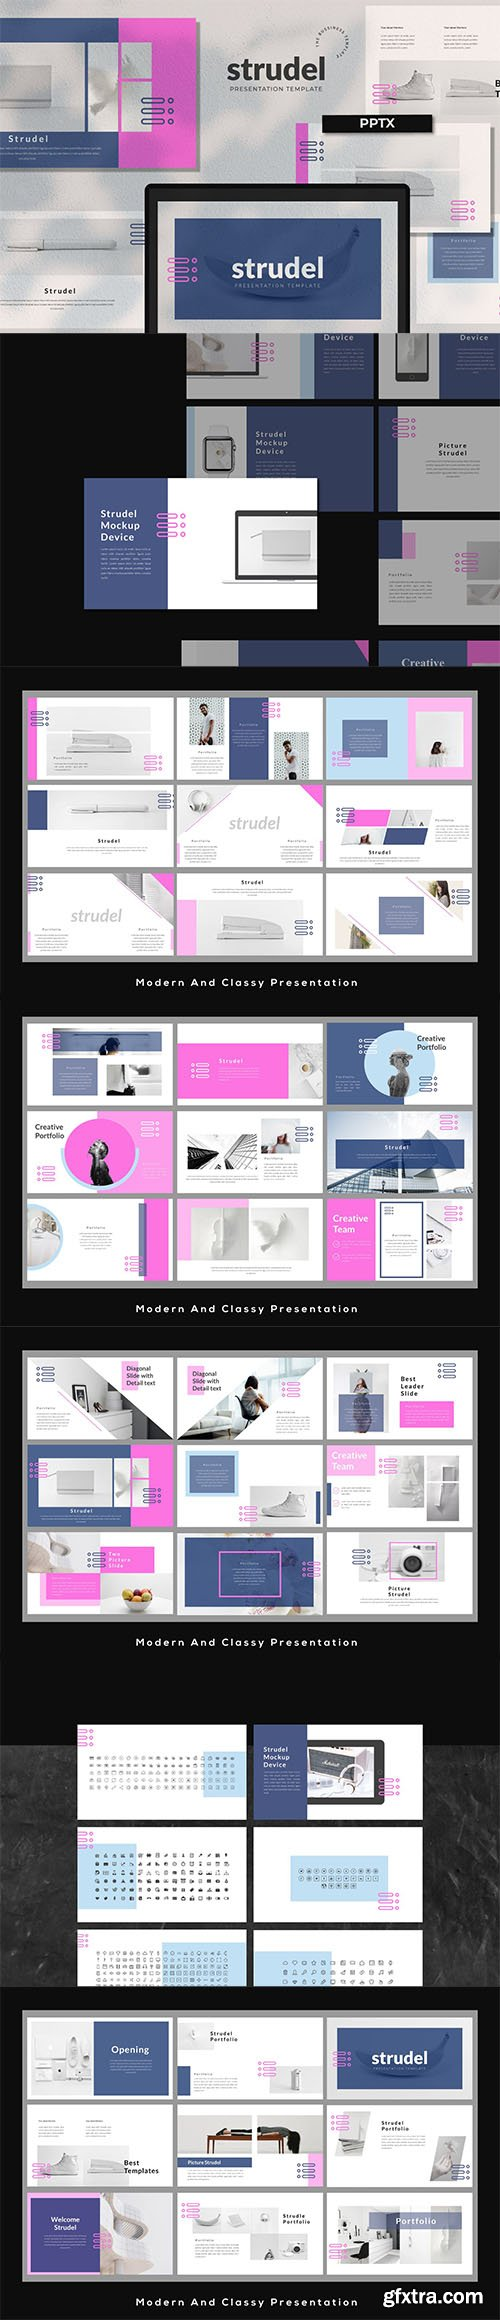 Strudel Business Presentation Powerpoint, Keynote and Google Slides Template